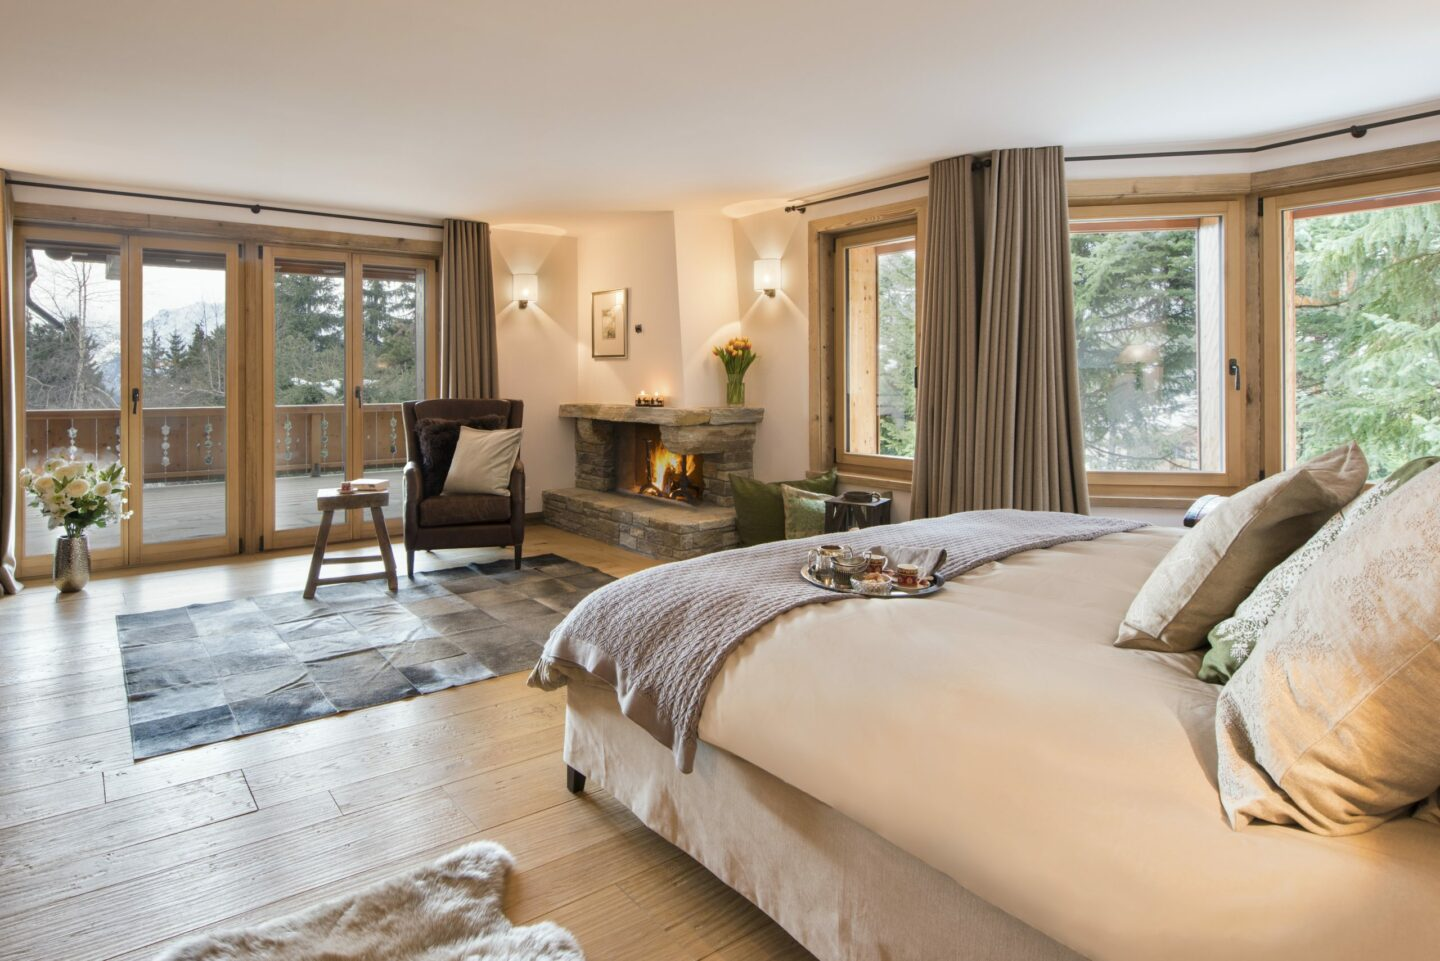 Master bedroom with balcony at Chalet Delormes in Verbier